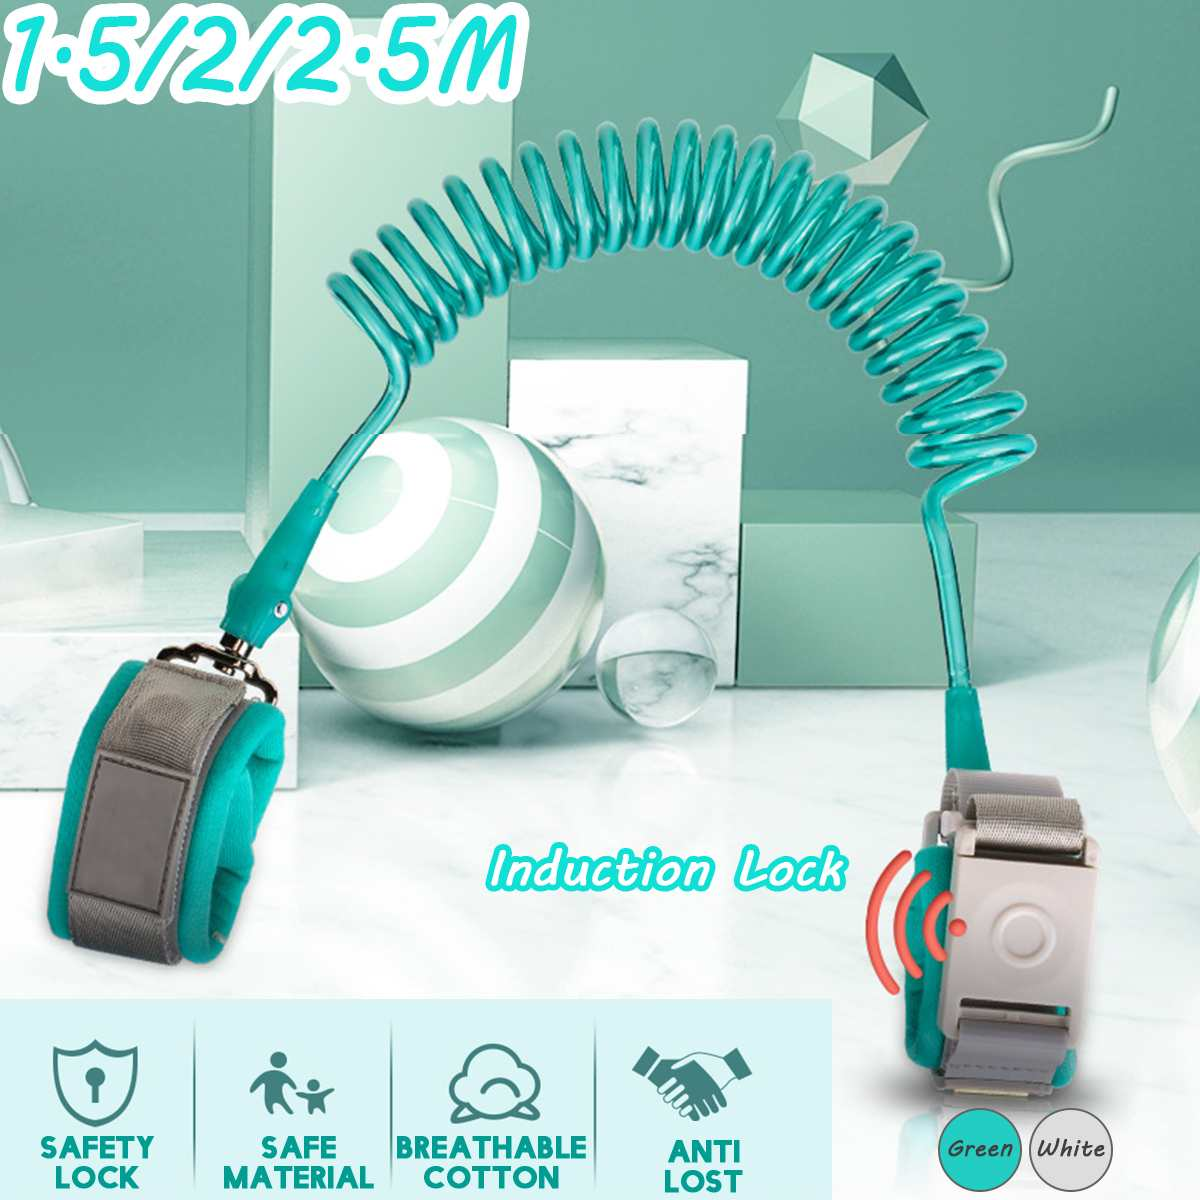 Anti Lost Wrist Link Add Induction Lock Toddler Leash Baby Walker Safety Belt Wristband Walking Strap Rope Adjustable Harness